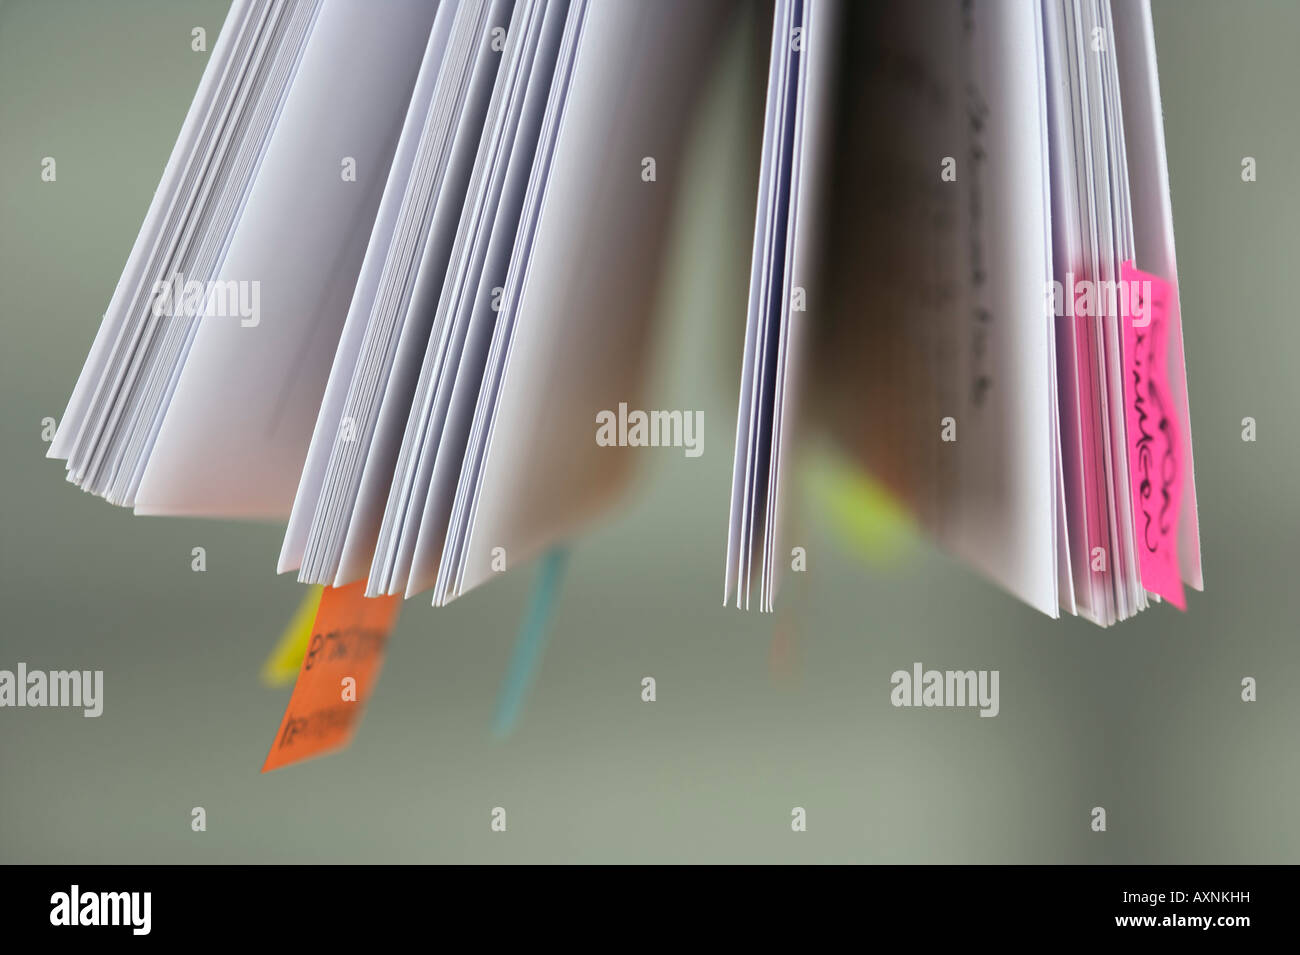 Post-it notes at documents - Stock Image